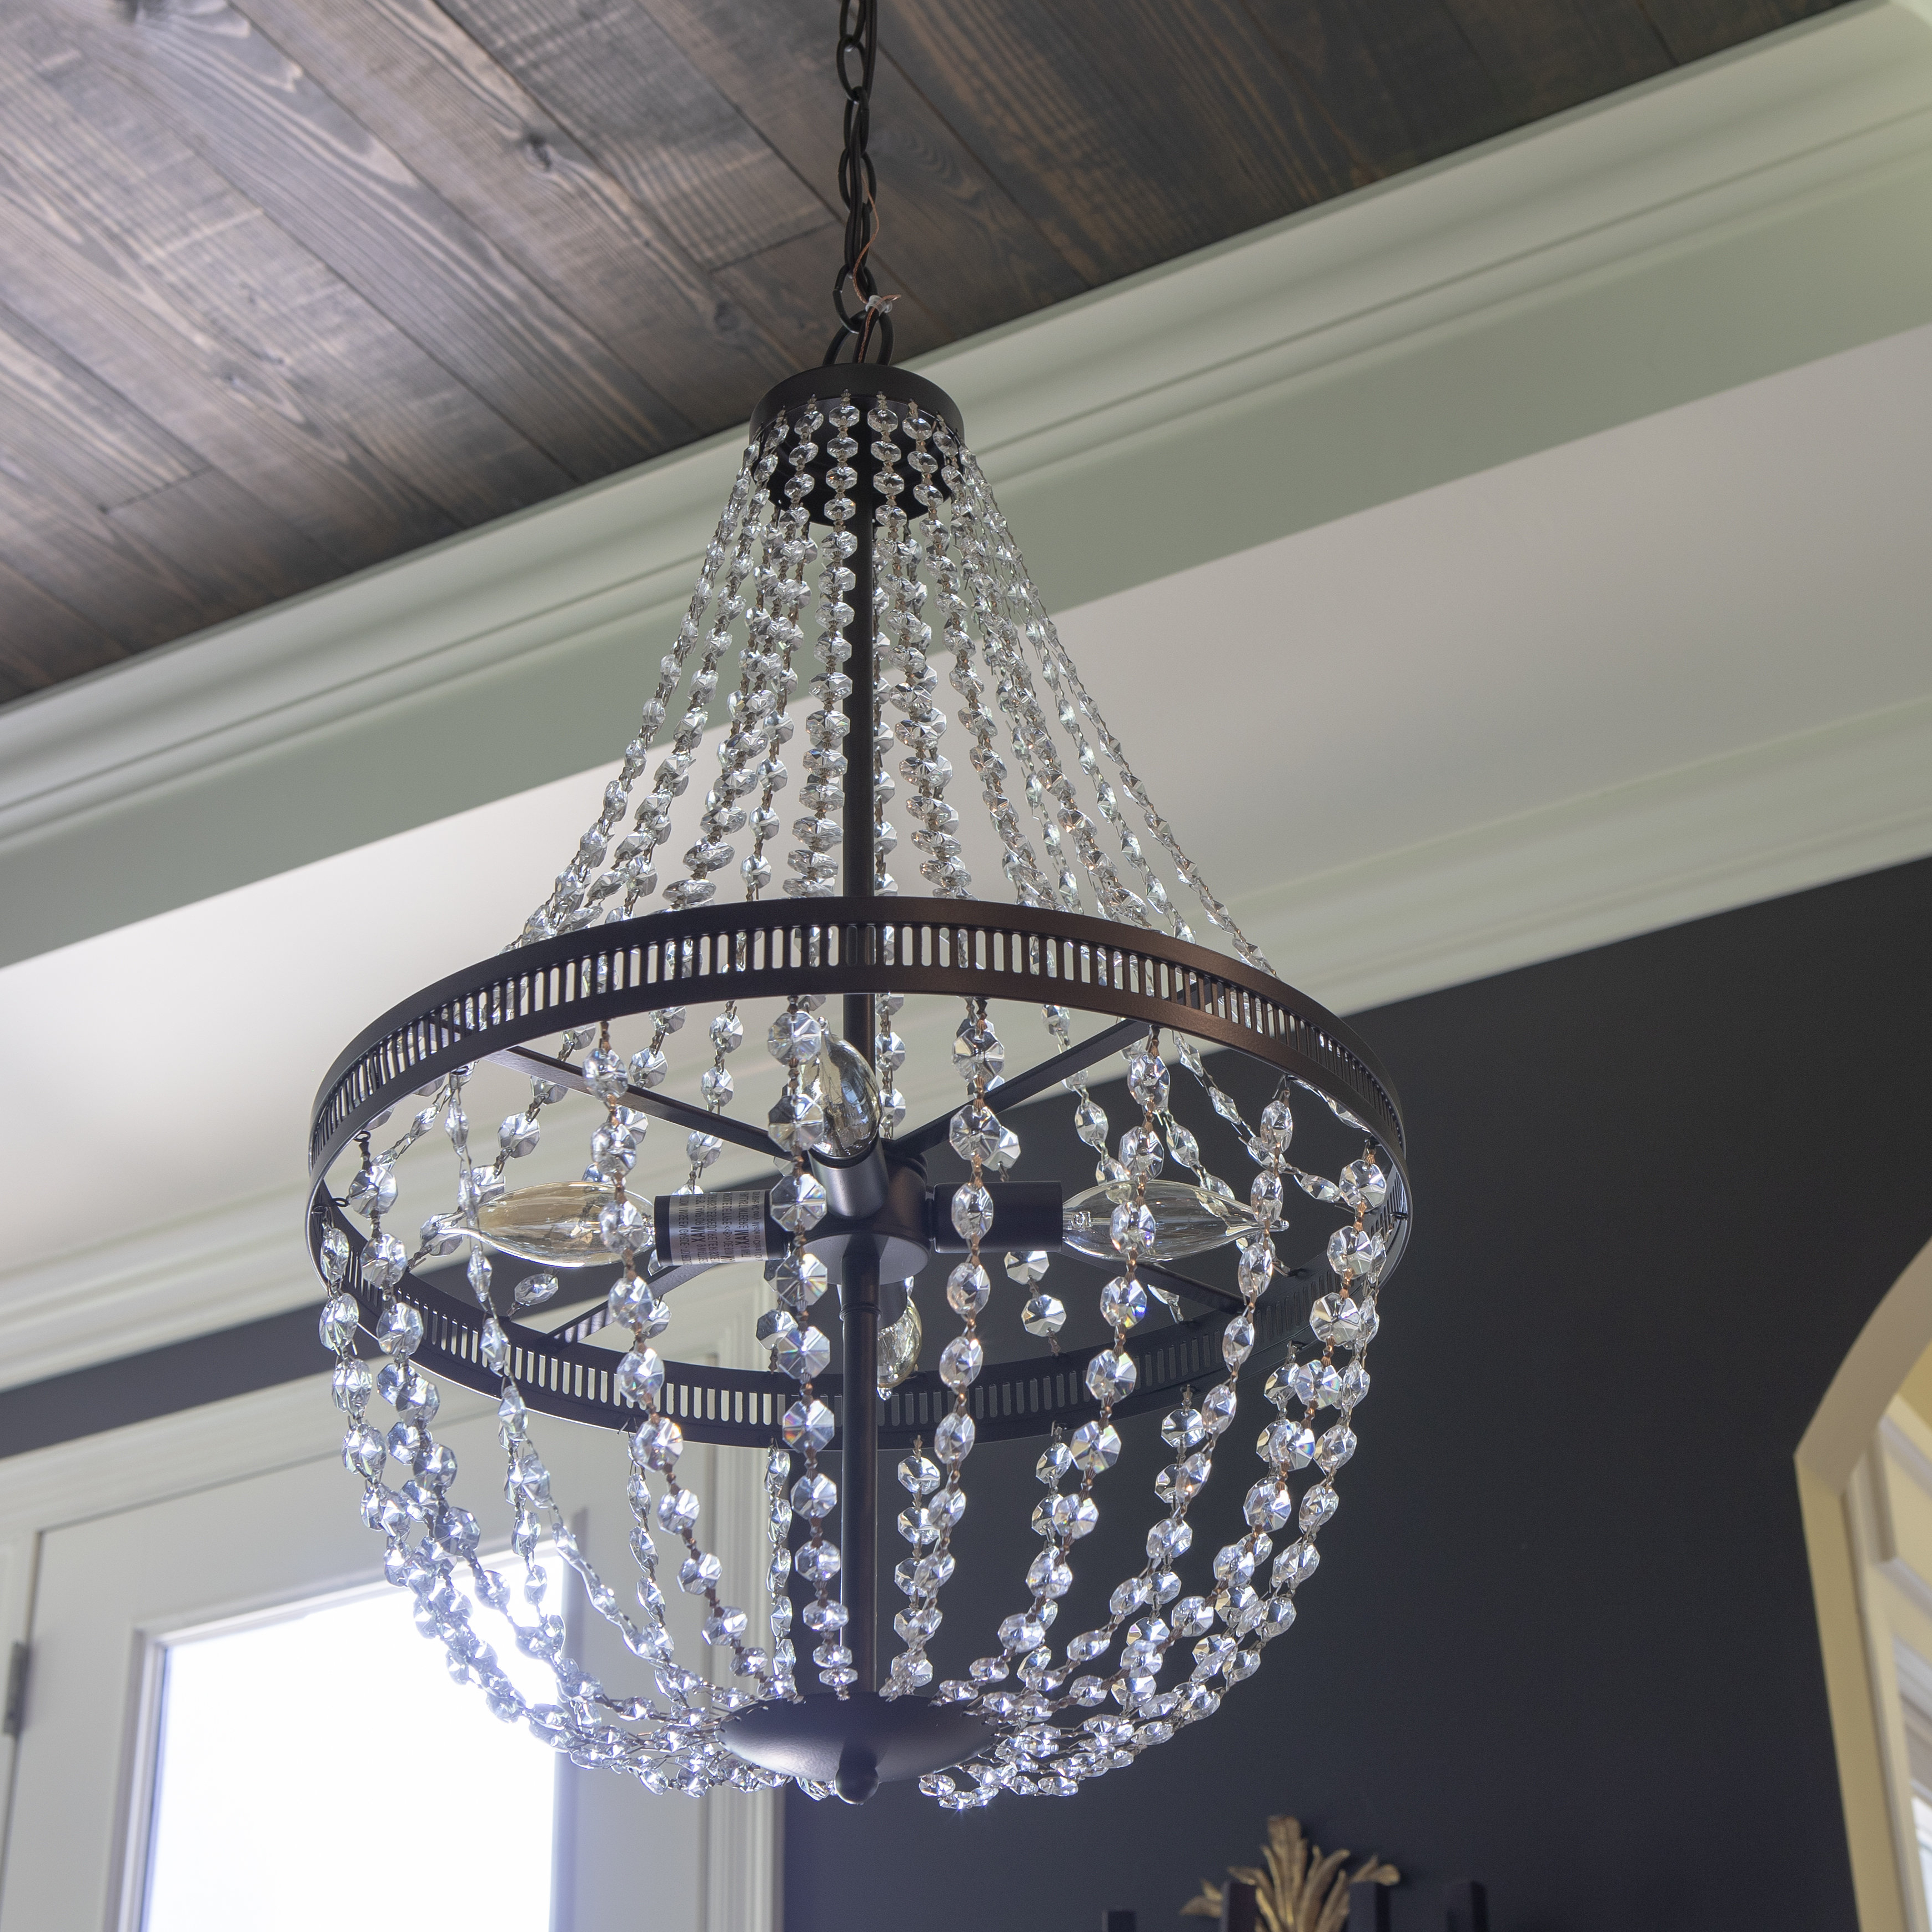 Weidman 4 Light Crystal Chandelier Regarding Well Known Aldgate 4 Light Crystal Chandeliers (View 20 of 20)